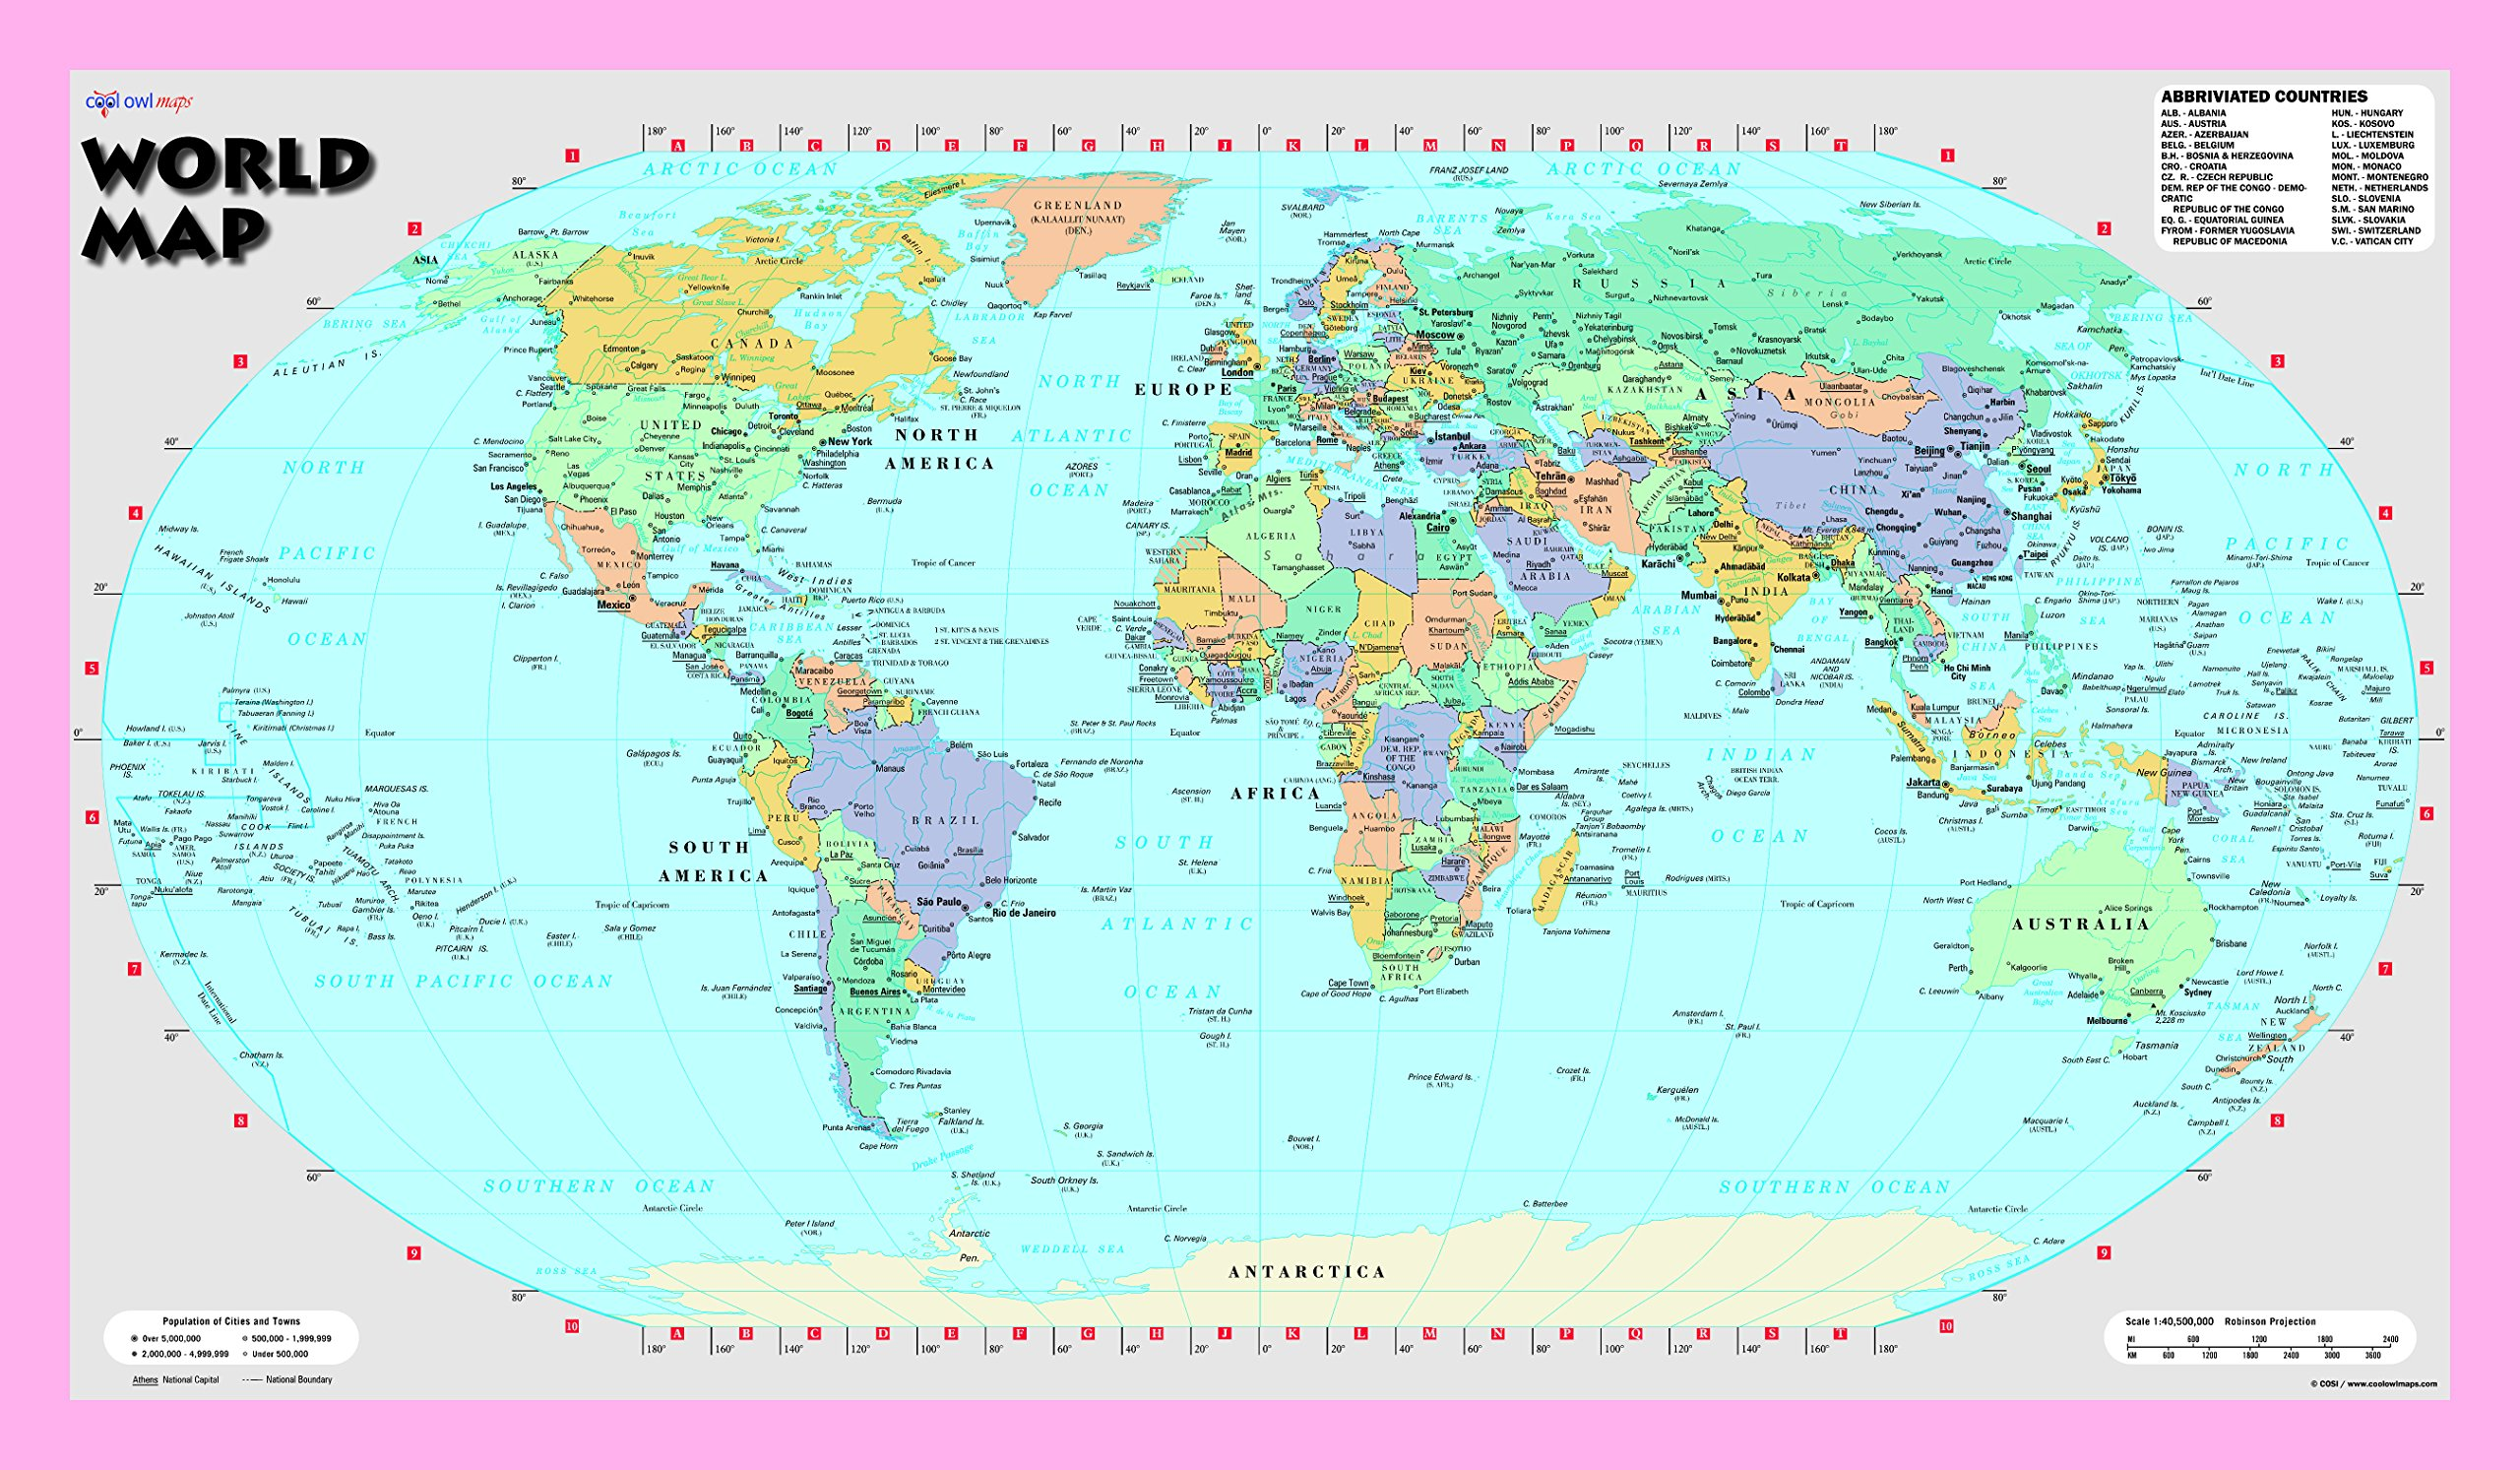 World Wall Map Robinson Projection - Poster Size (21''x36'') Rolled Paper (Pink)